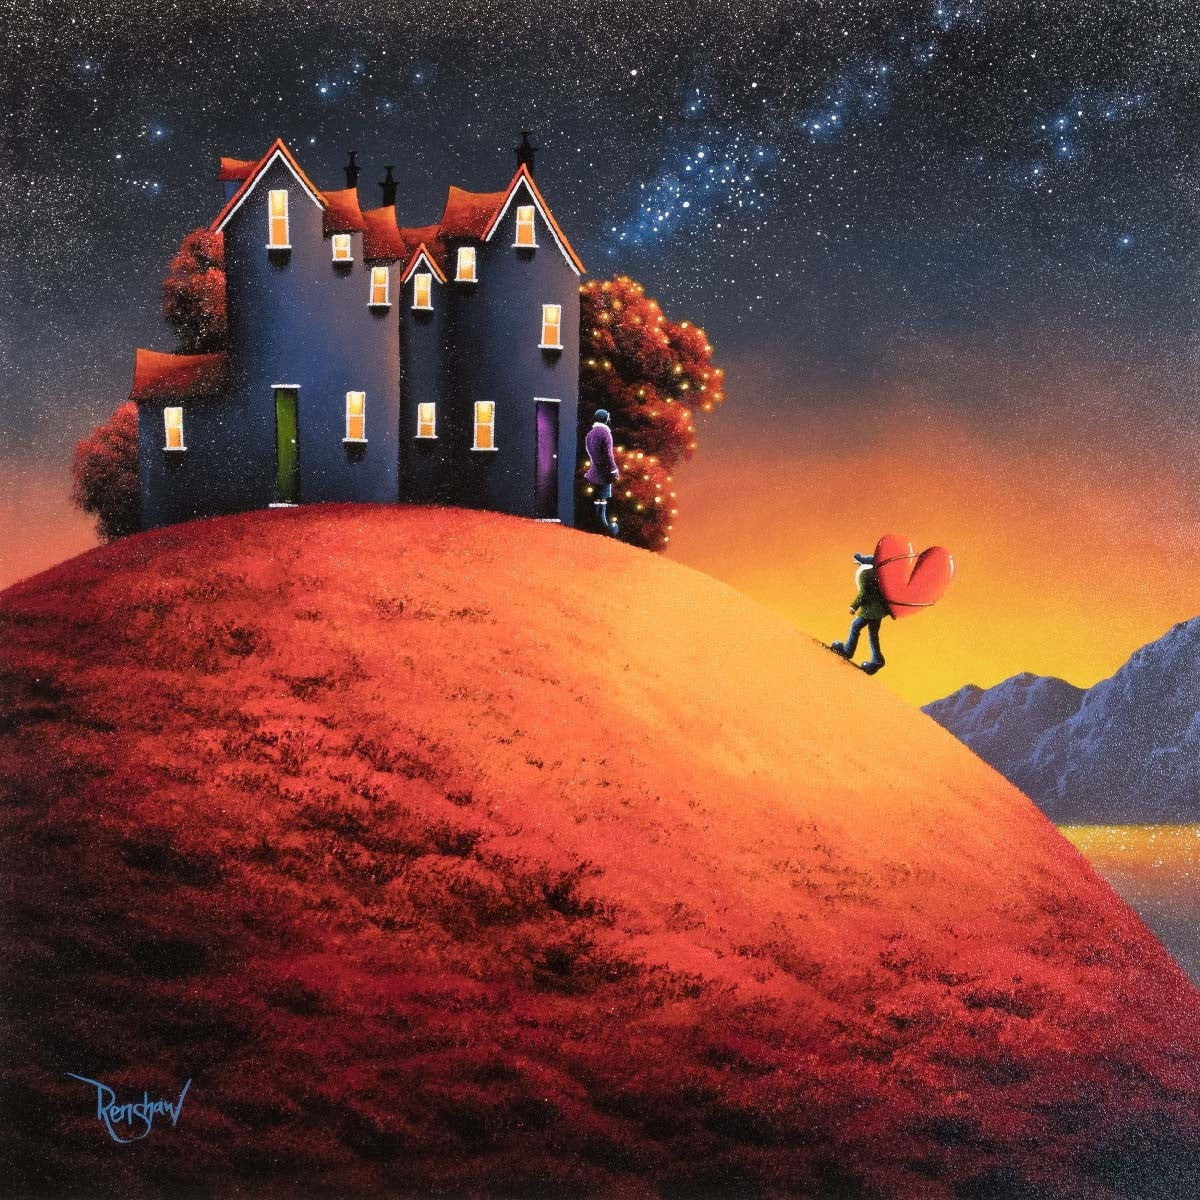 Where There's a Will - SOLD David Renshaw